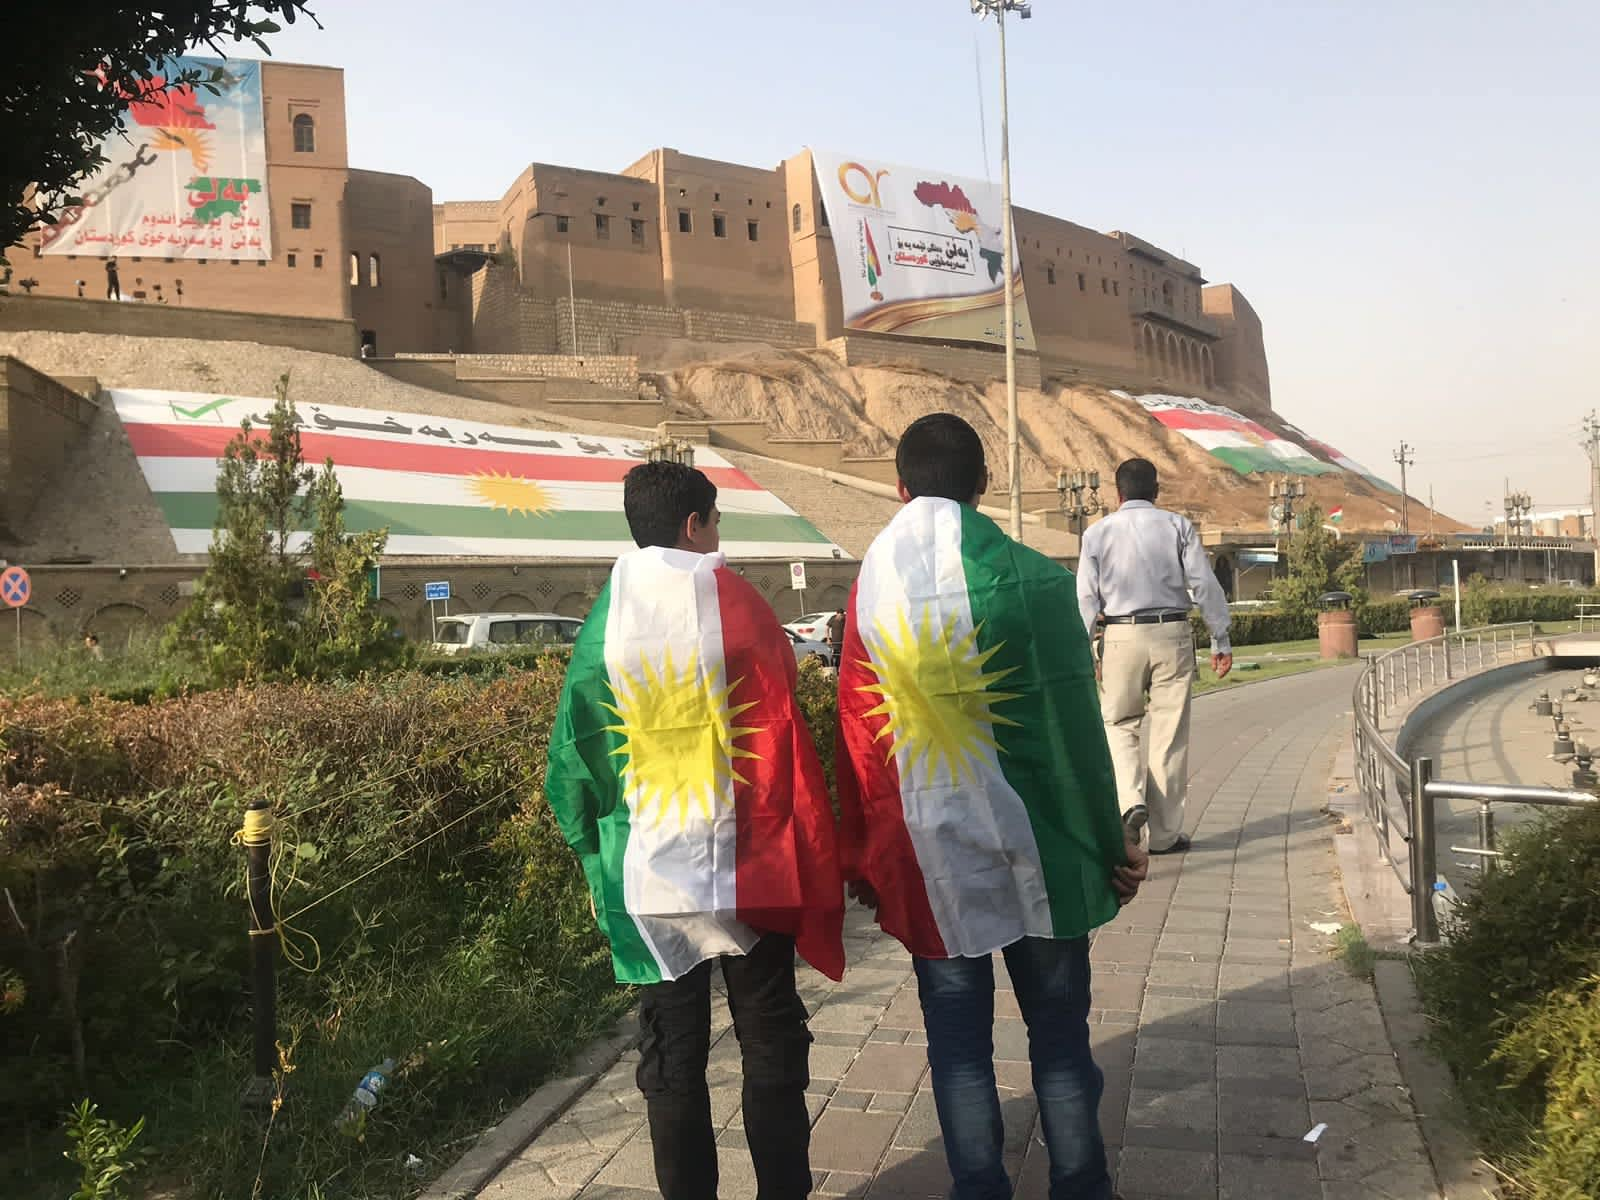 Kurds in Erbil, Iraq, on the day of the independence referendum on September 25, 2017 (SETH J. FRANTZMAN)